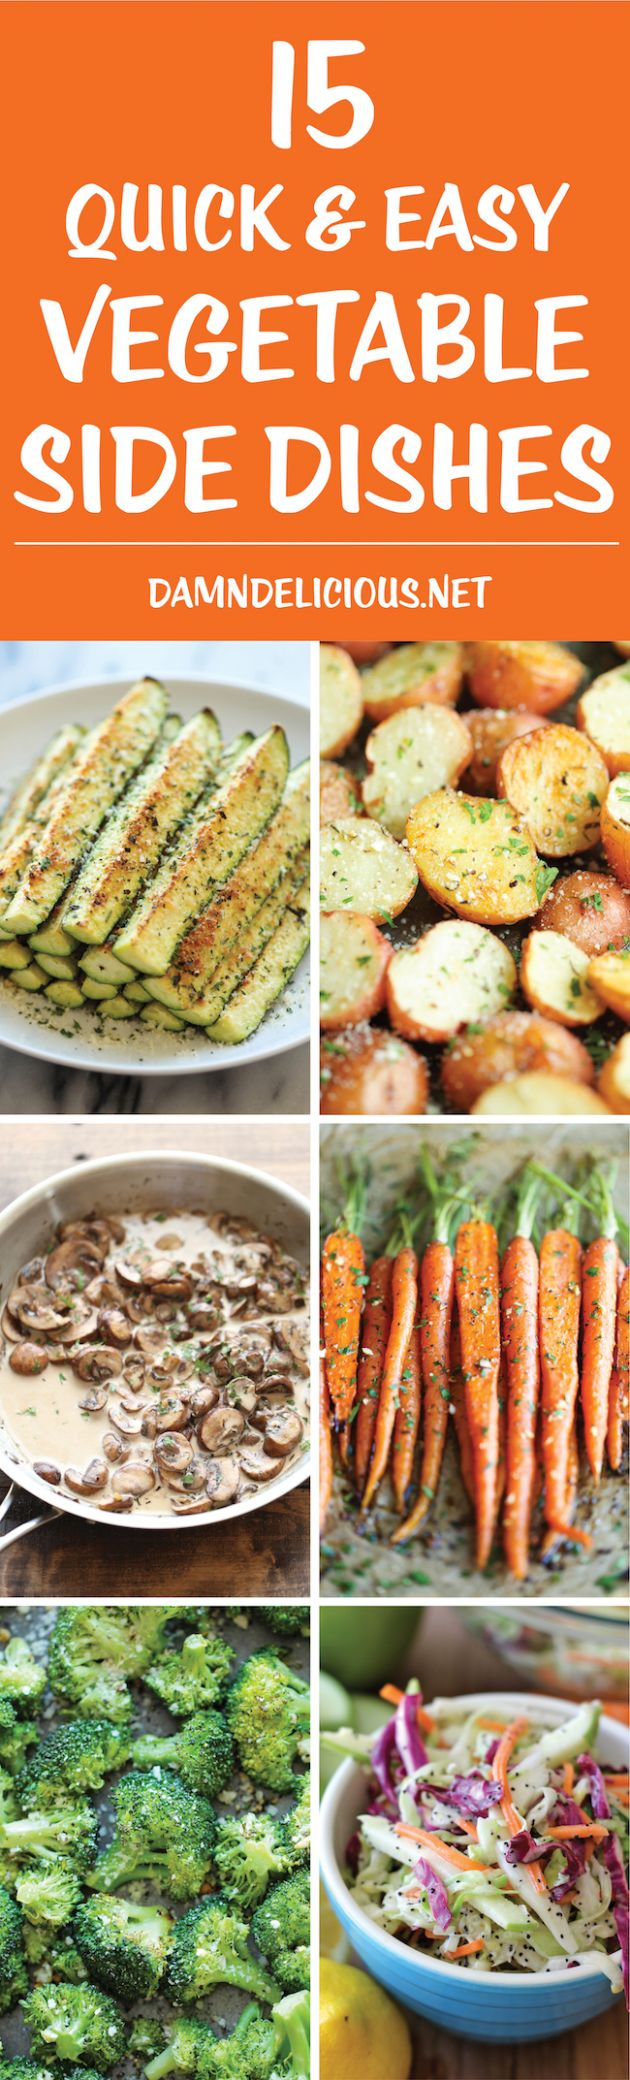 11 Quick and Easy Vegetable Side Dishes - Damn Delicious